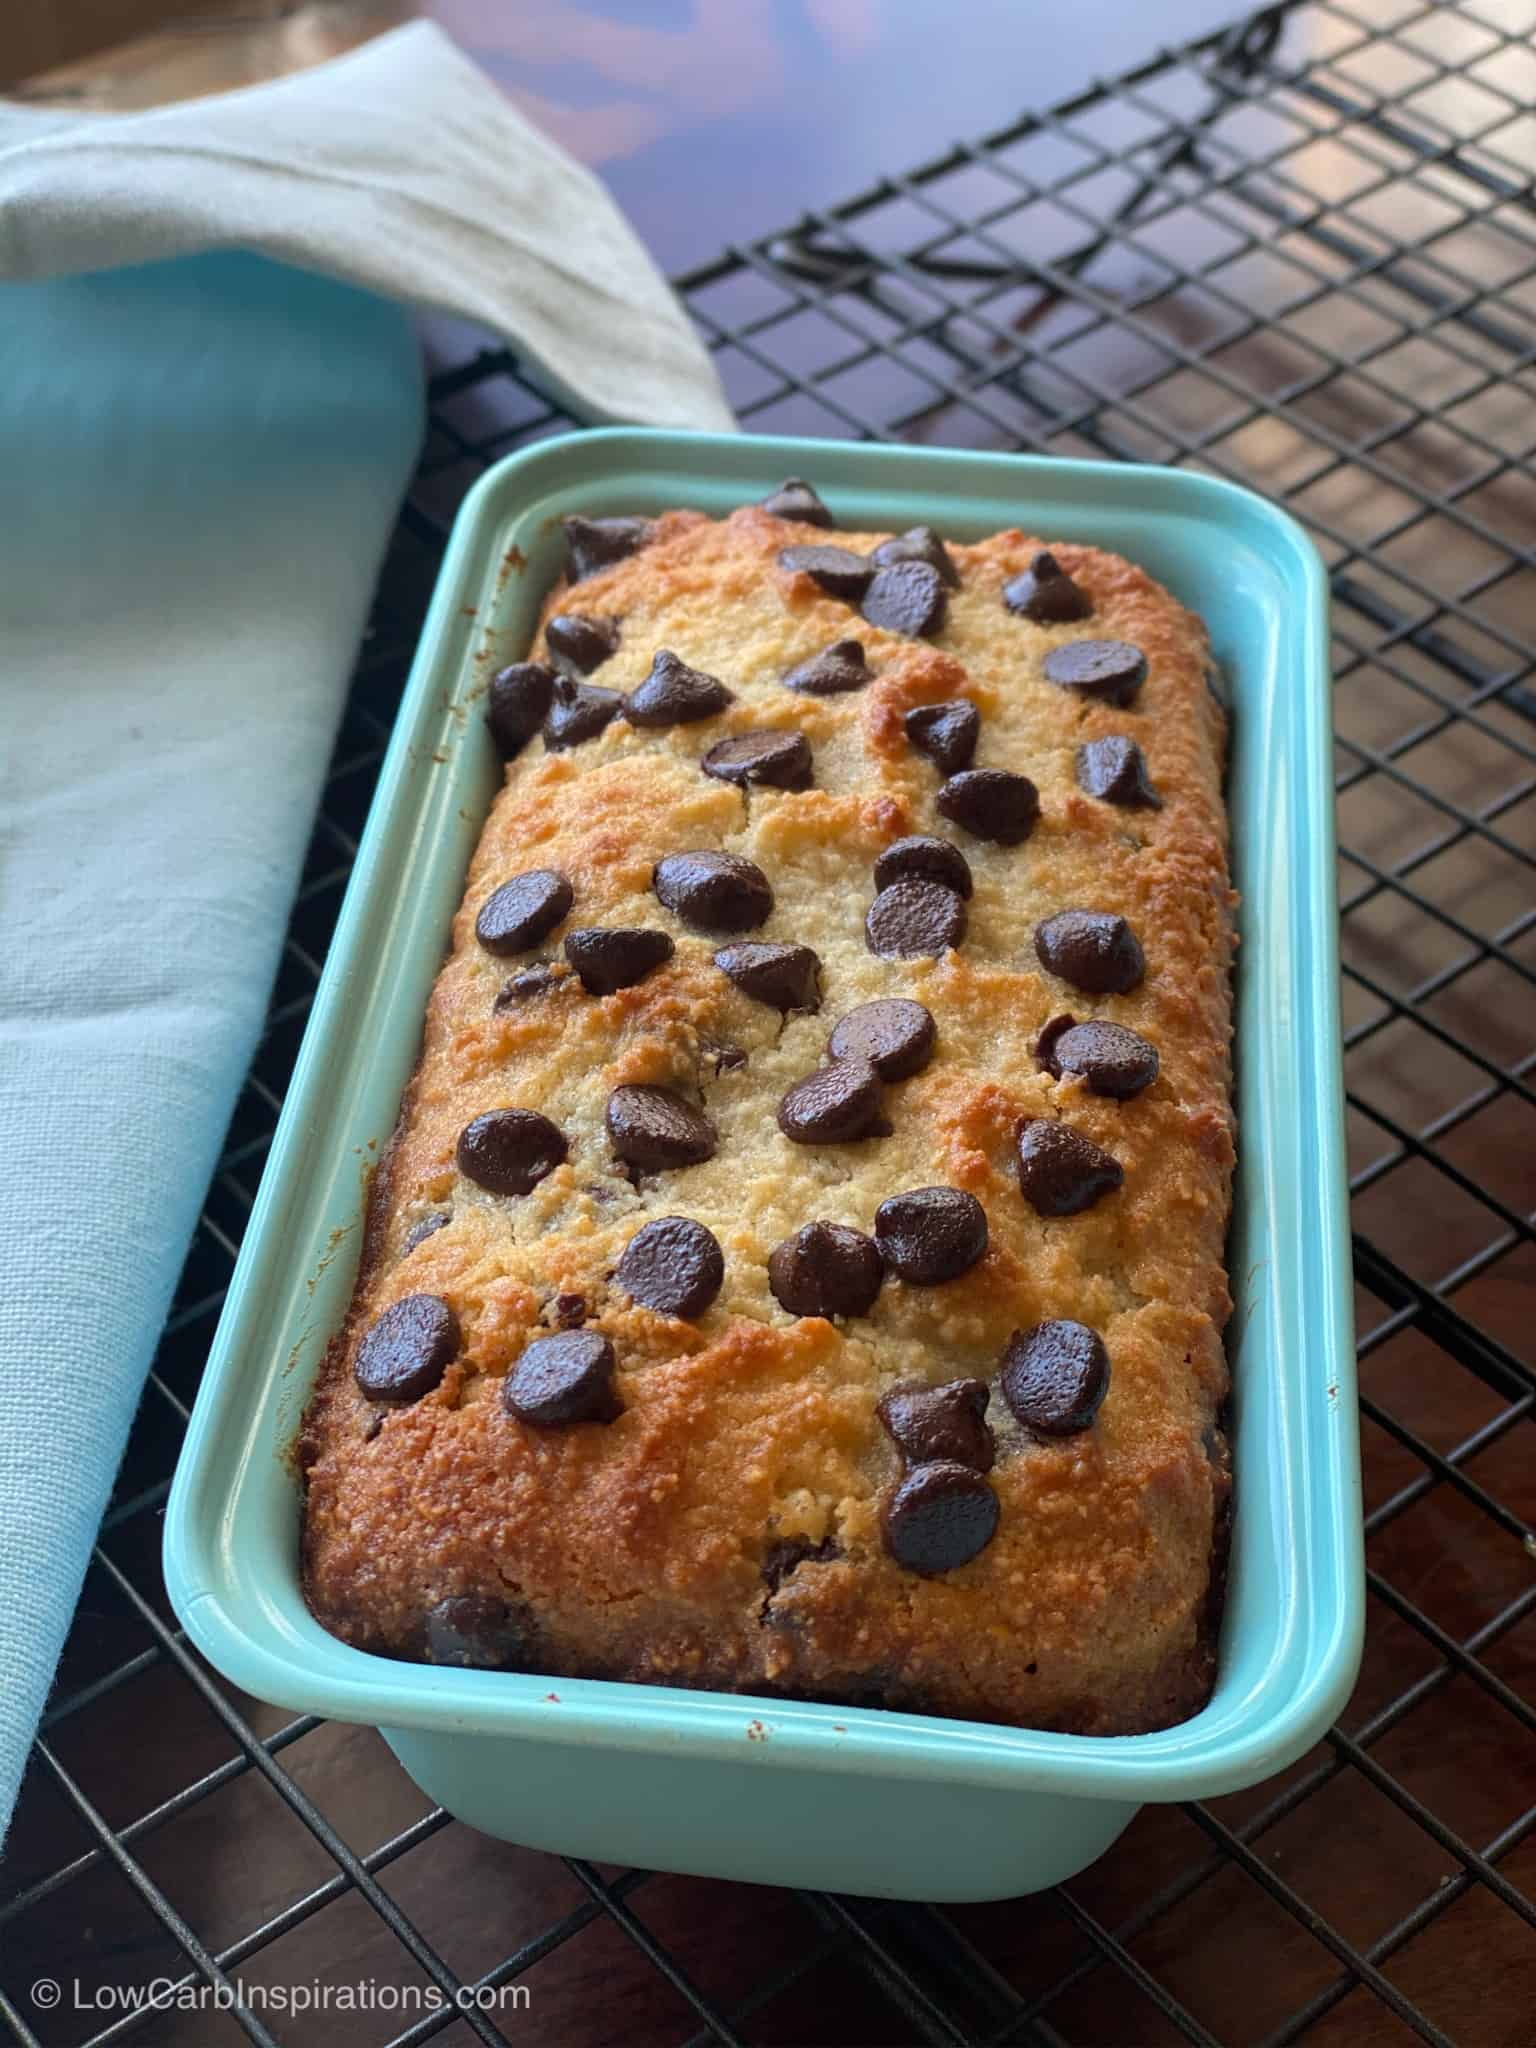 Keto Chocolate Chip Bread Recipe